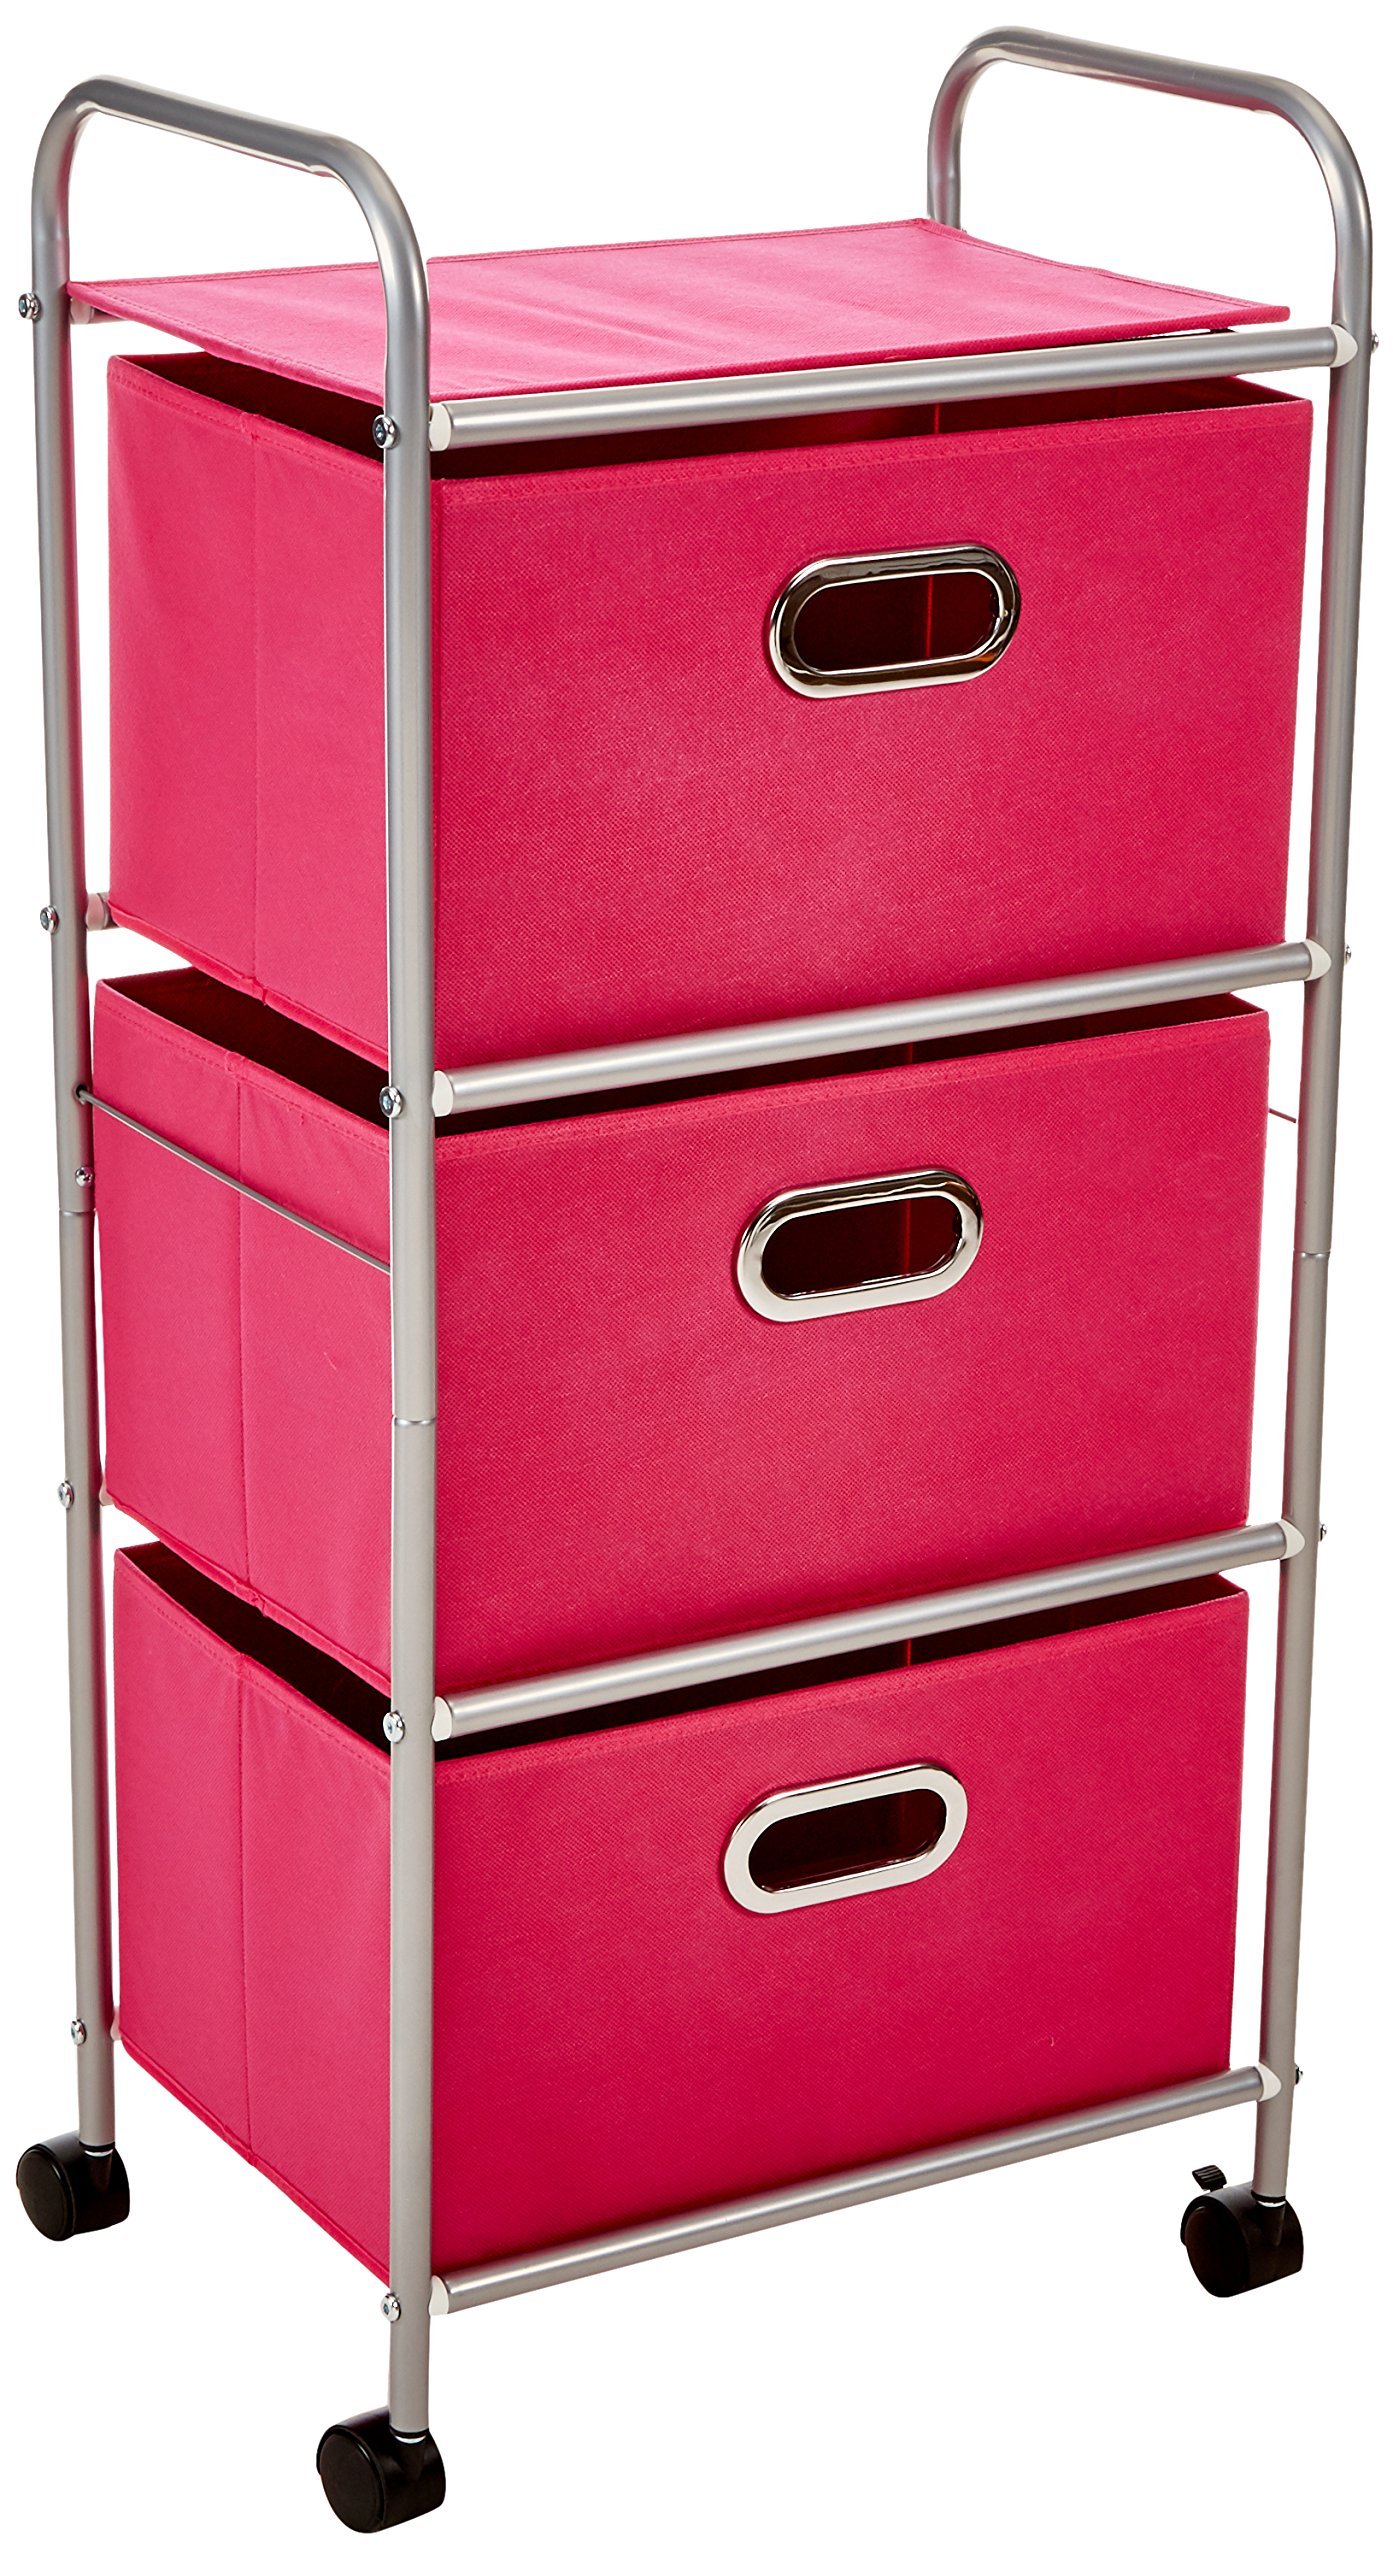 Honey-Can-Do CRT-02348 Fabric Rolling Cart with 3 Drawers, Pink by Honey-Can-Do